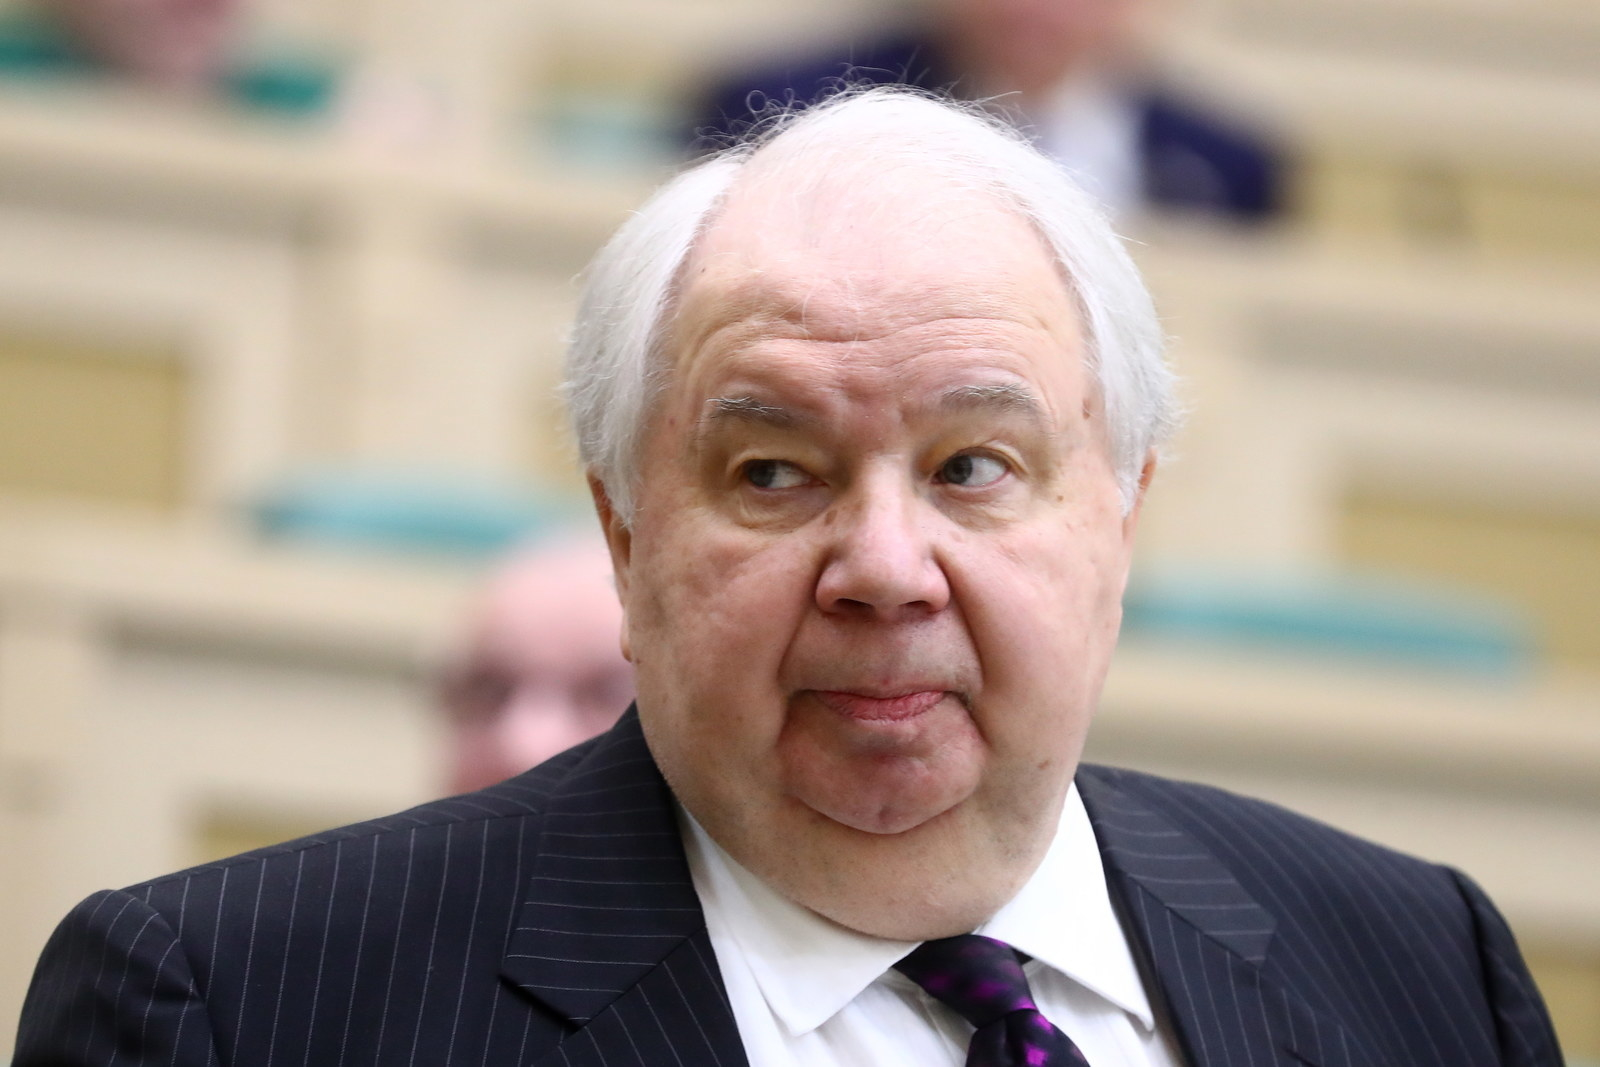 with-russian-ambassador-sergei-see-through-clothes-nude-videos